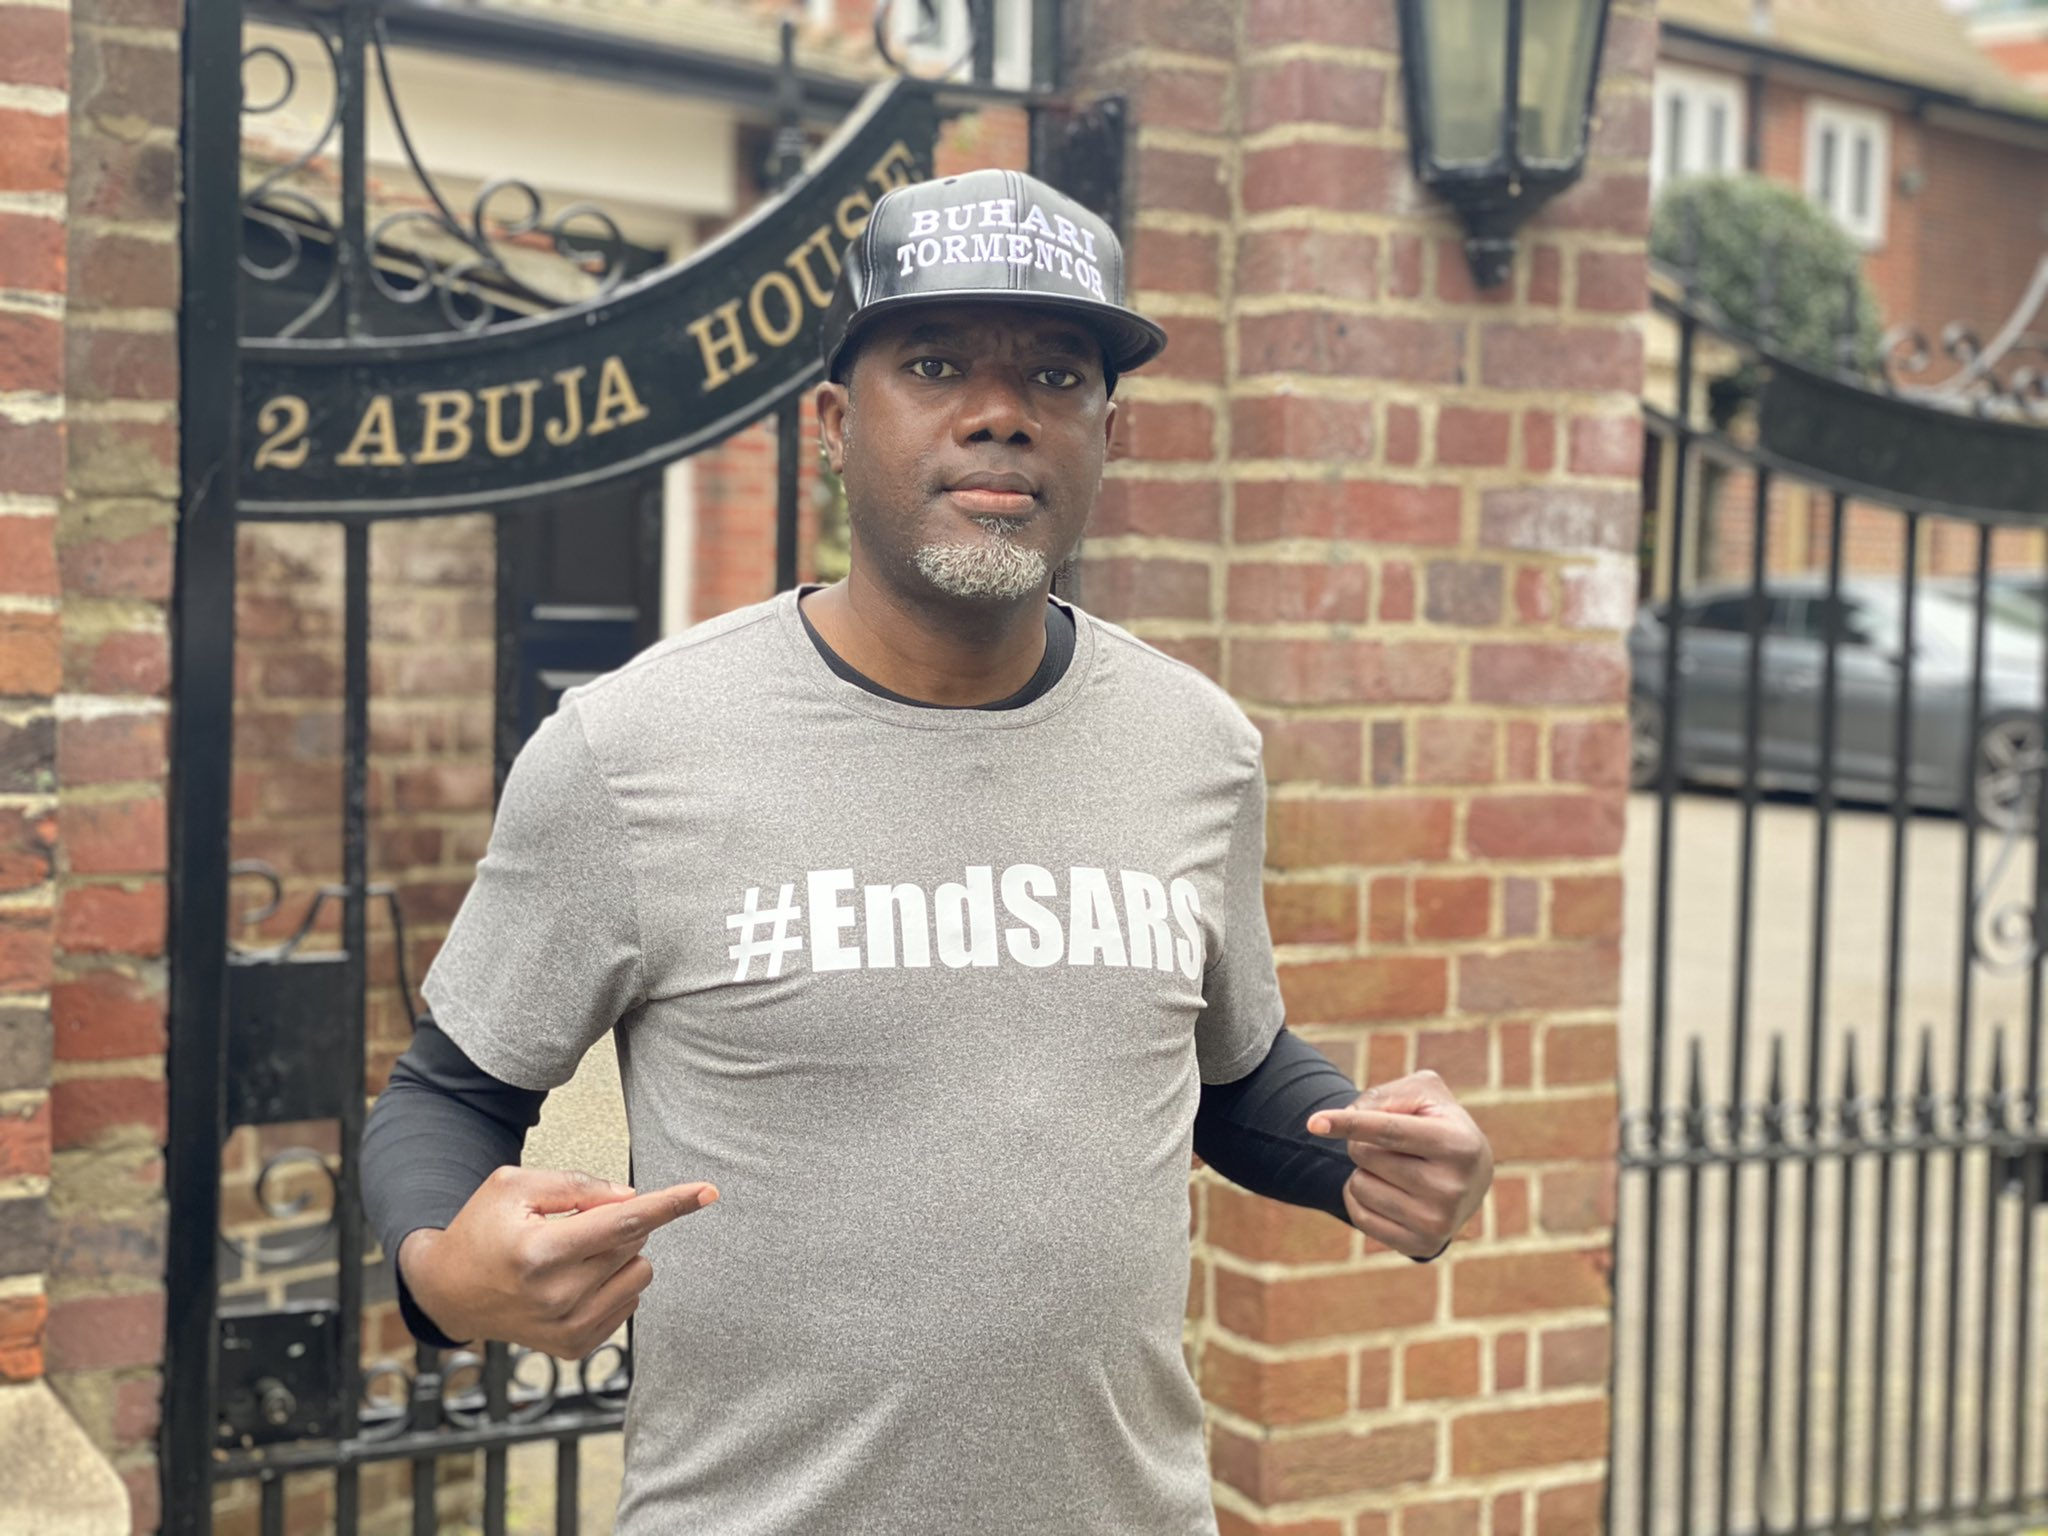 Reno Omokri, Goodluck Jonathan's aide takes #HarrassBuhariOutOfLondon campaign to London